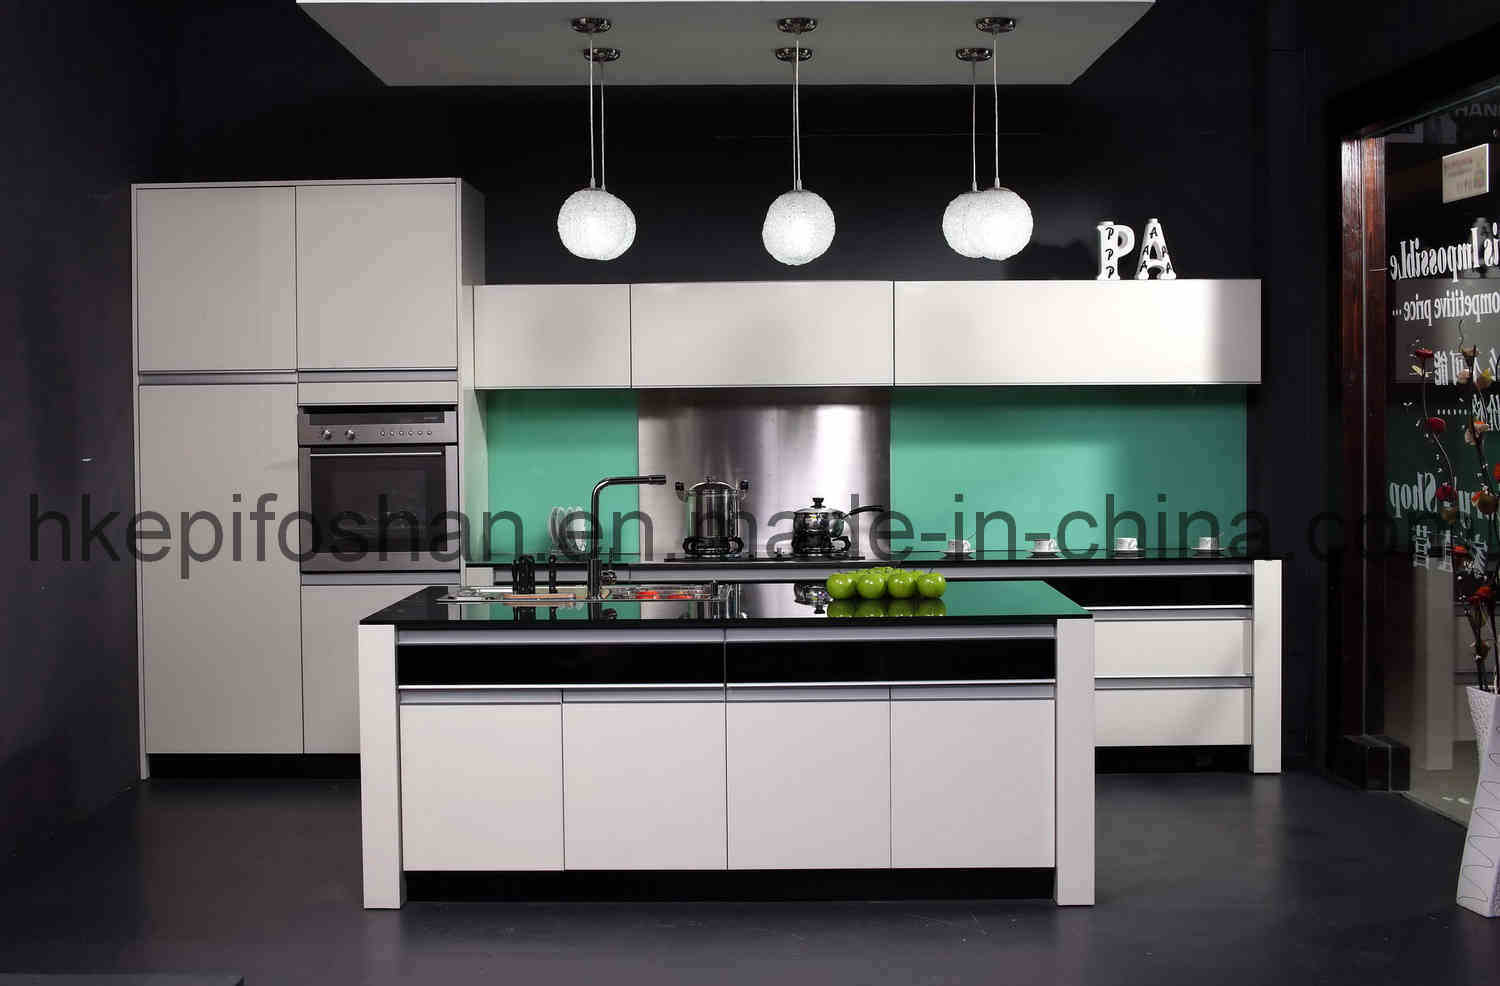 Kitchen Maid Cabinets Price List